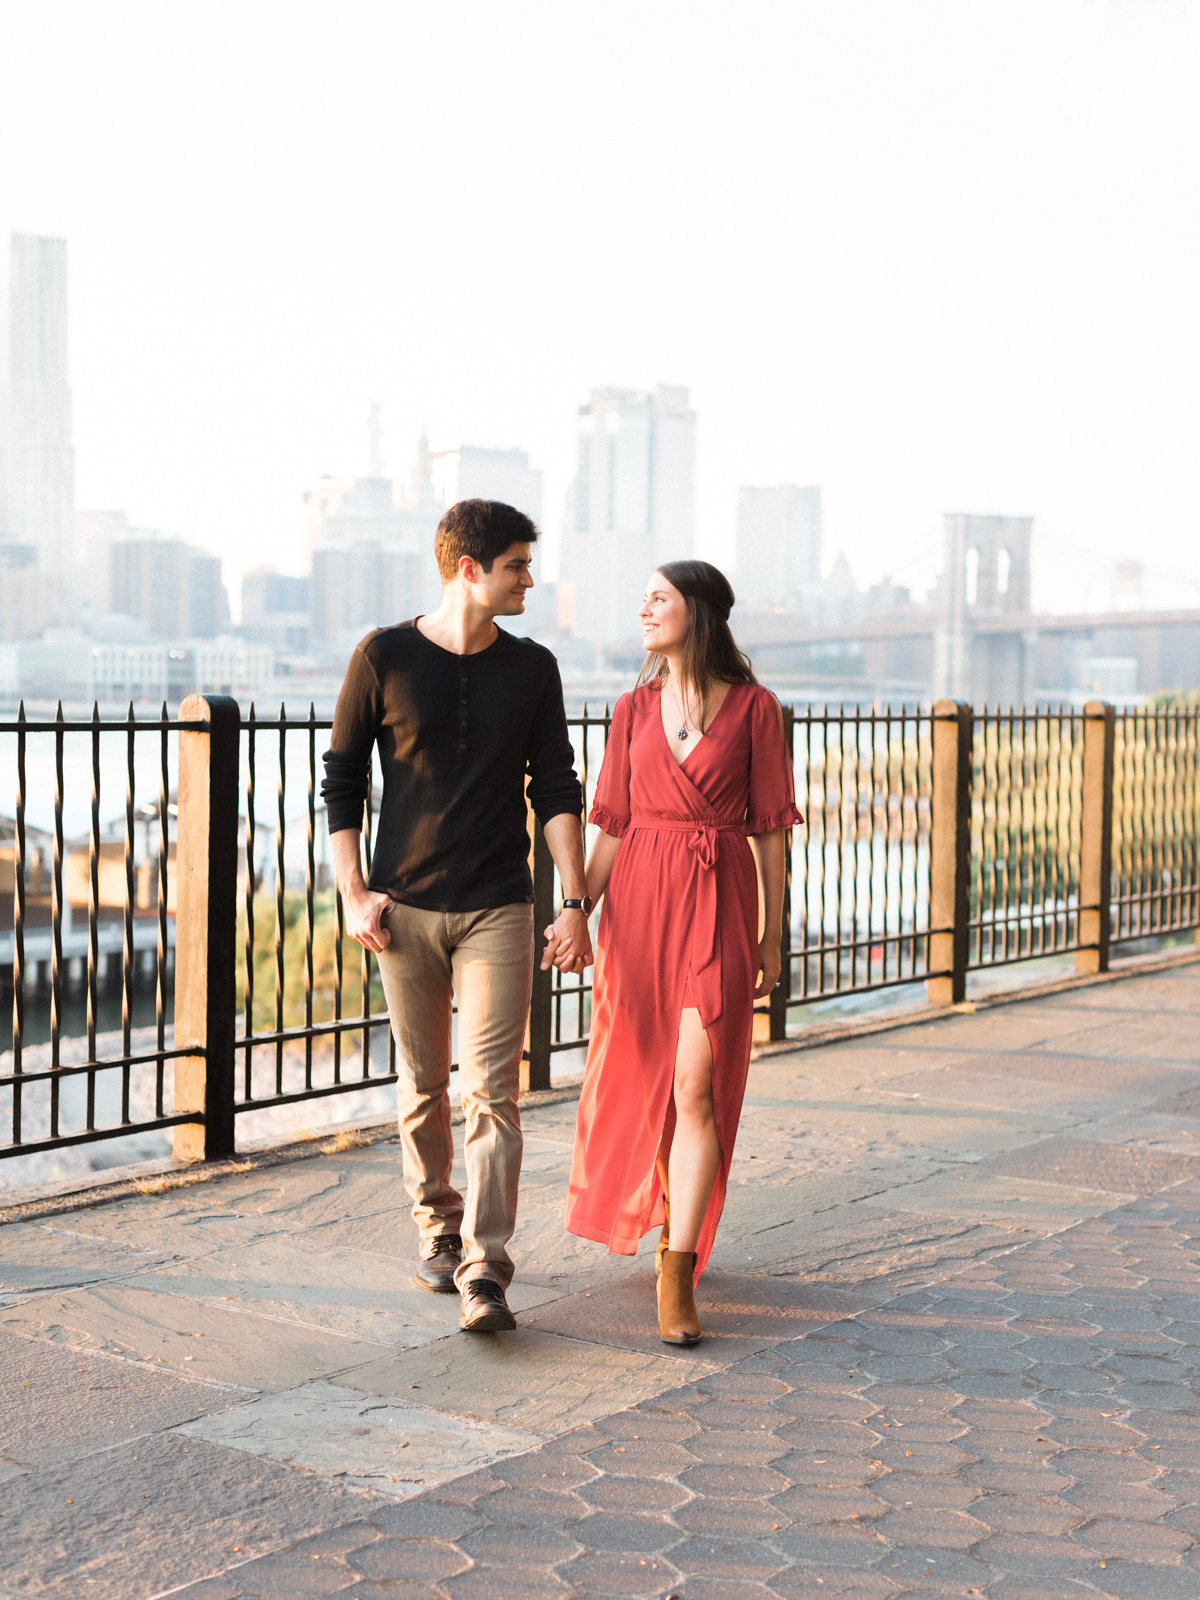 brooklyn-heights-promenade-engagement-session.jpg